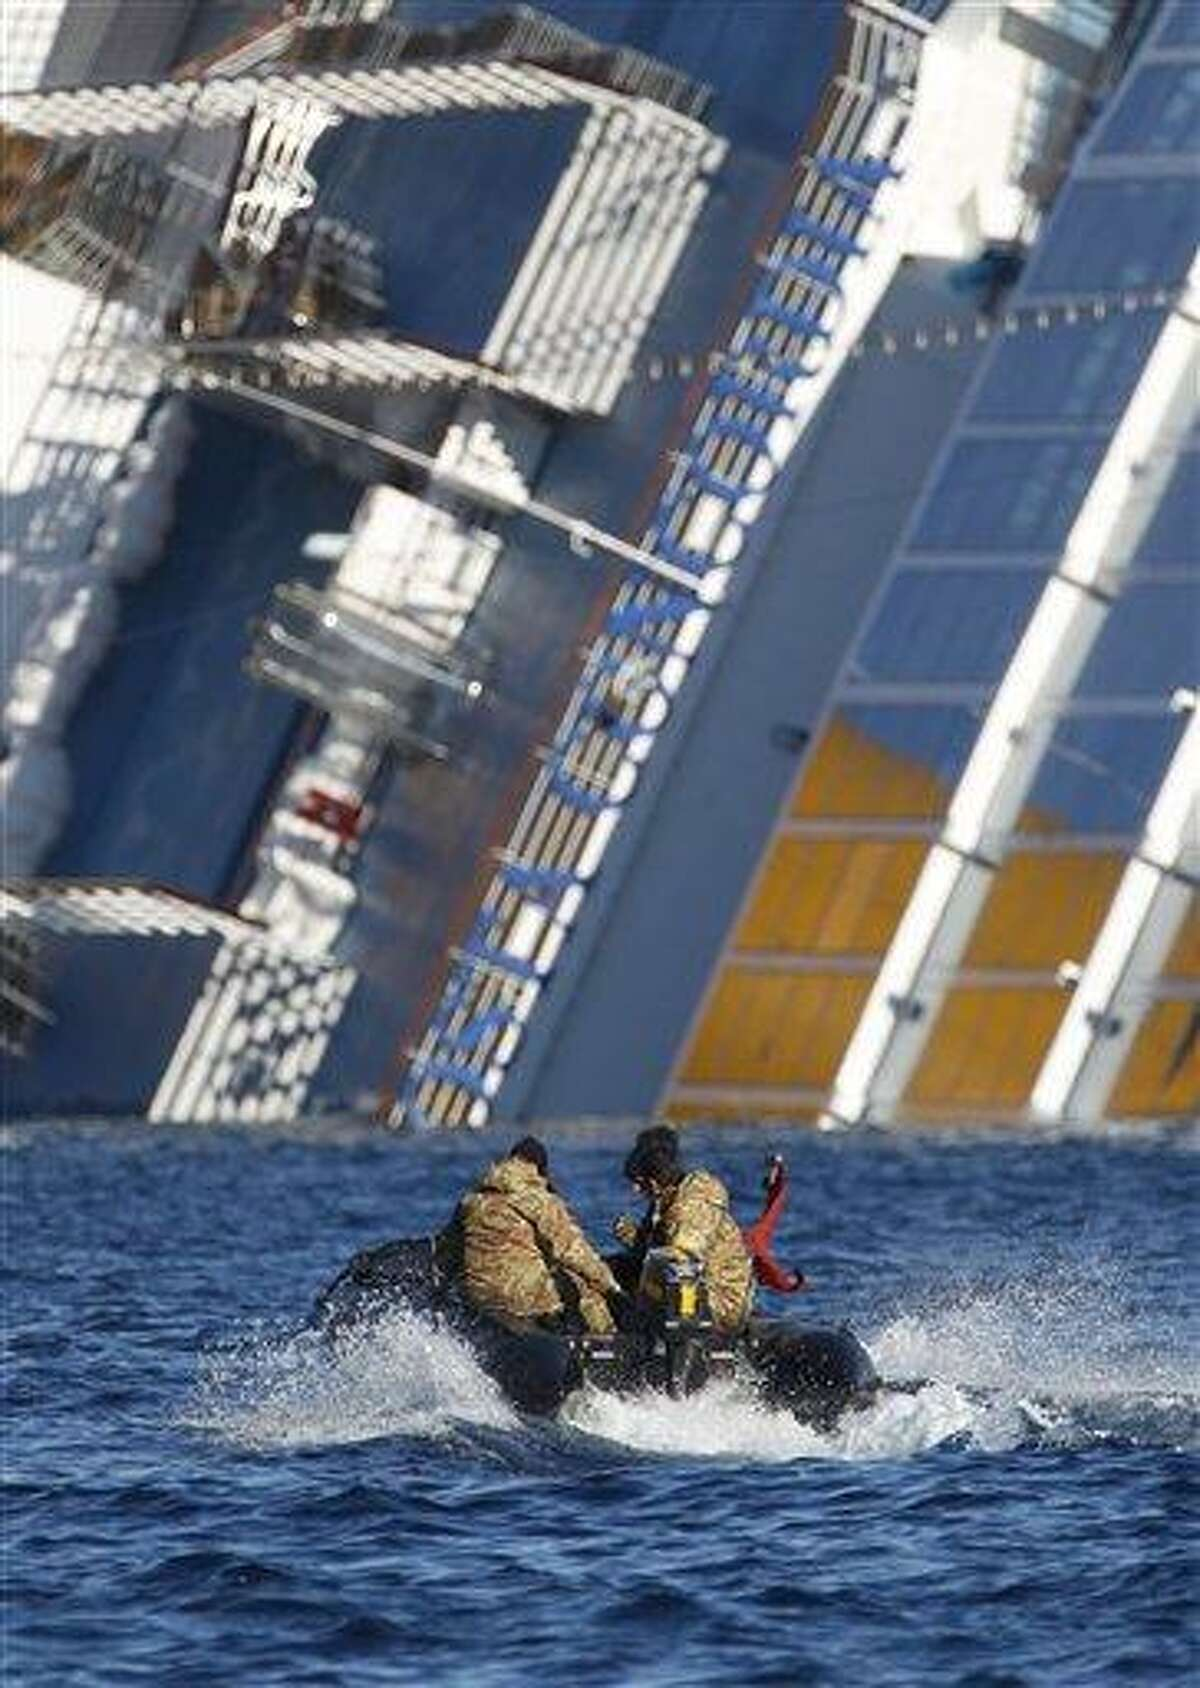 Italian Navy scuba divers head toward the grounded Costa Concordia off the Tuscan island of Giglio, Italy. The search continues for missing passengers and crew. Associated Press